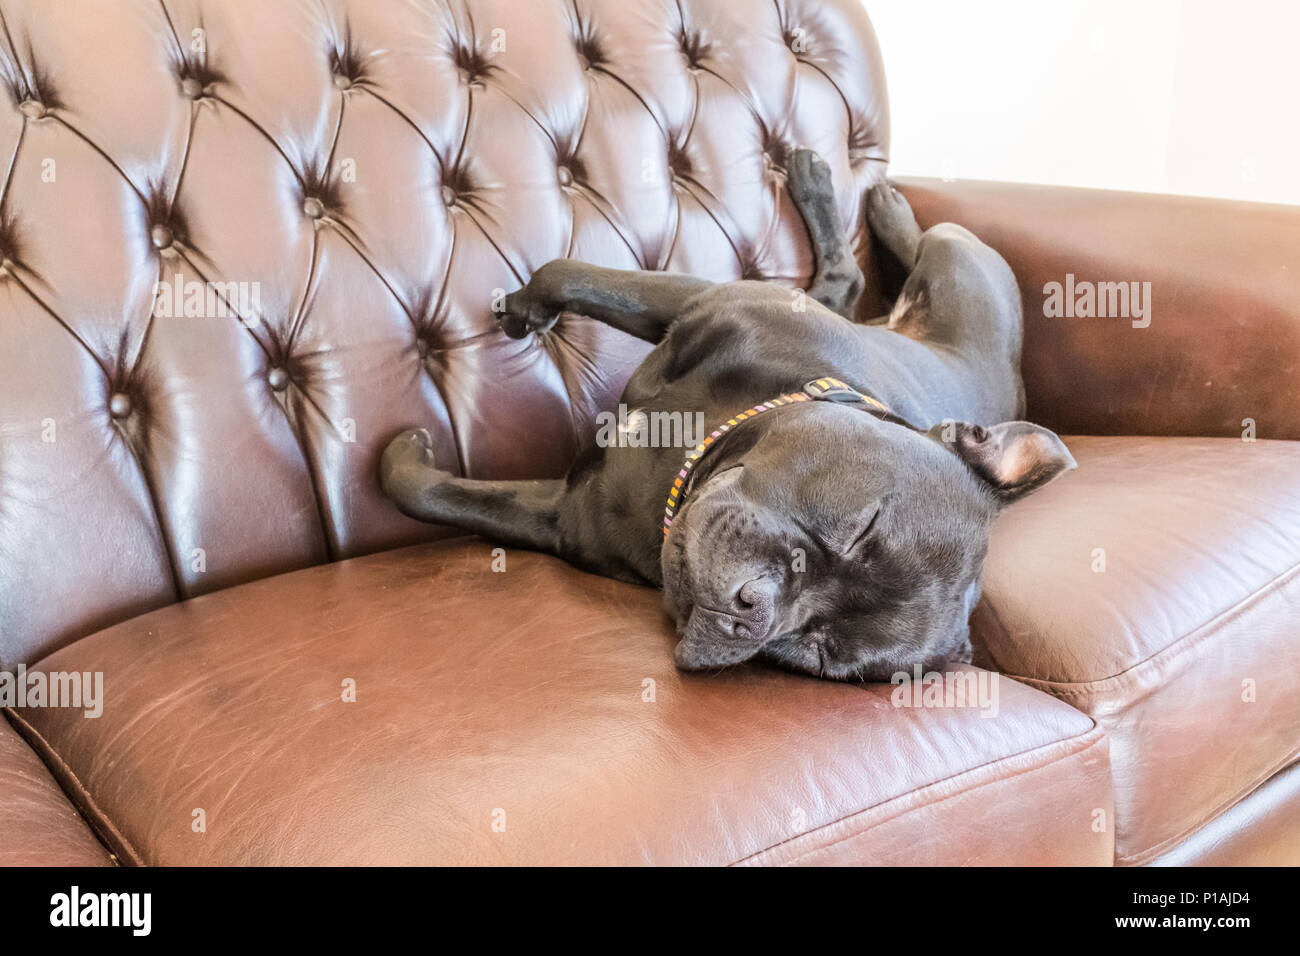 Black Staffordshire Bull Terrier Dog Asleep On A Brown Vintage Style